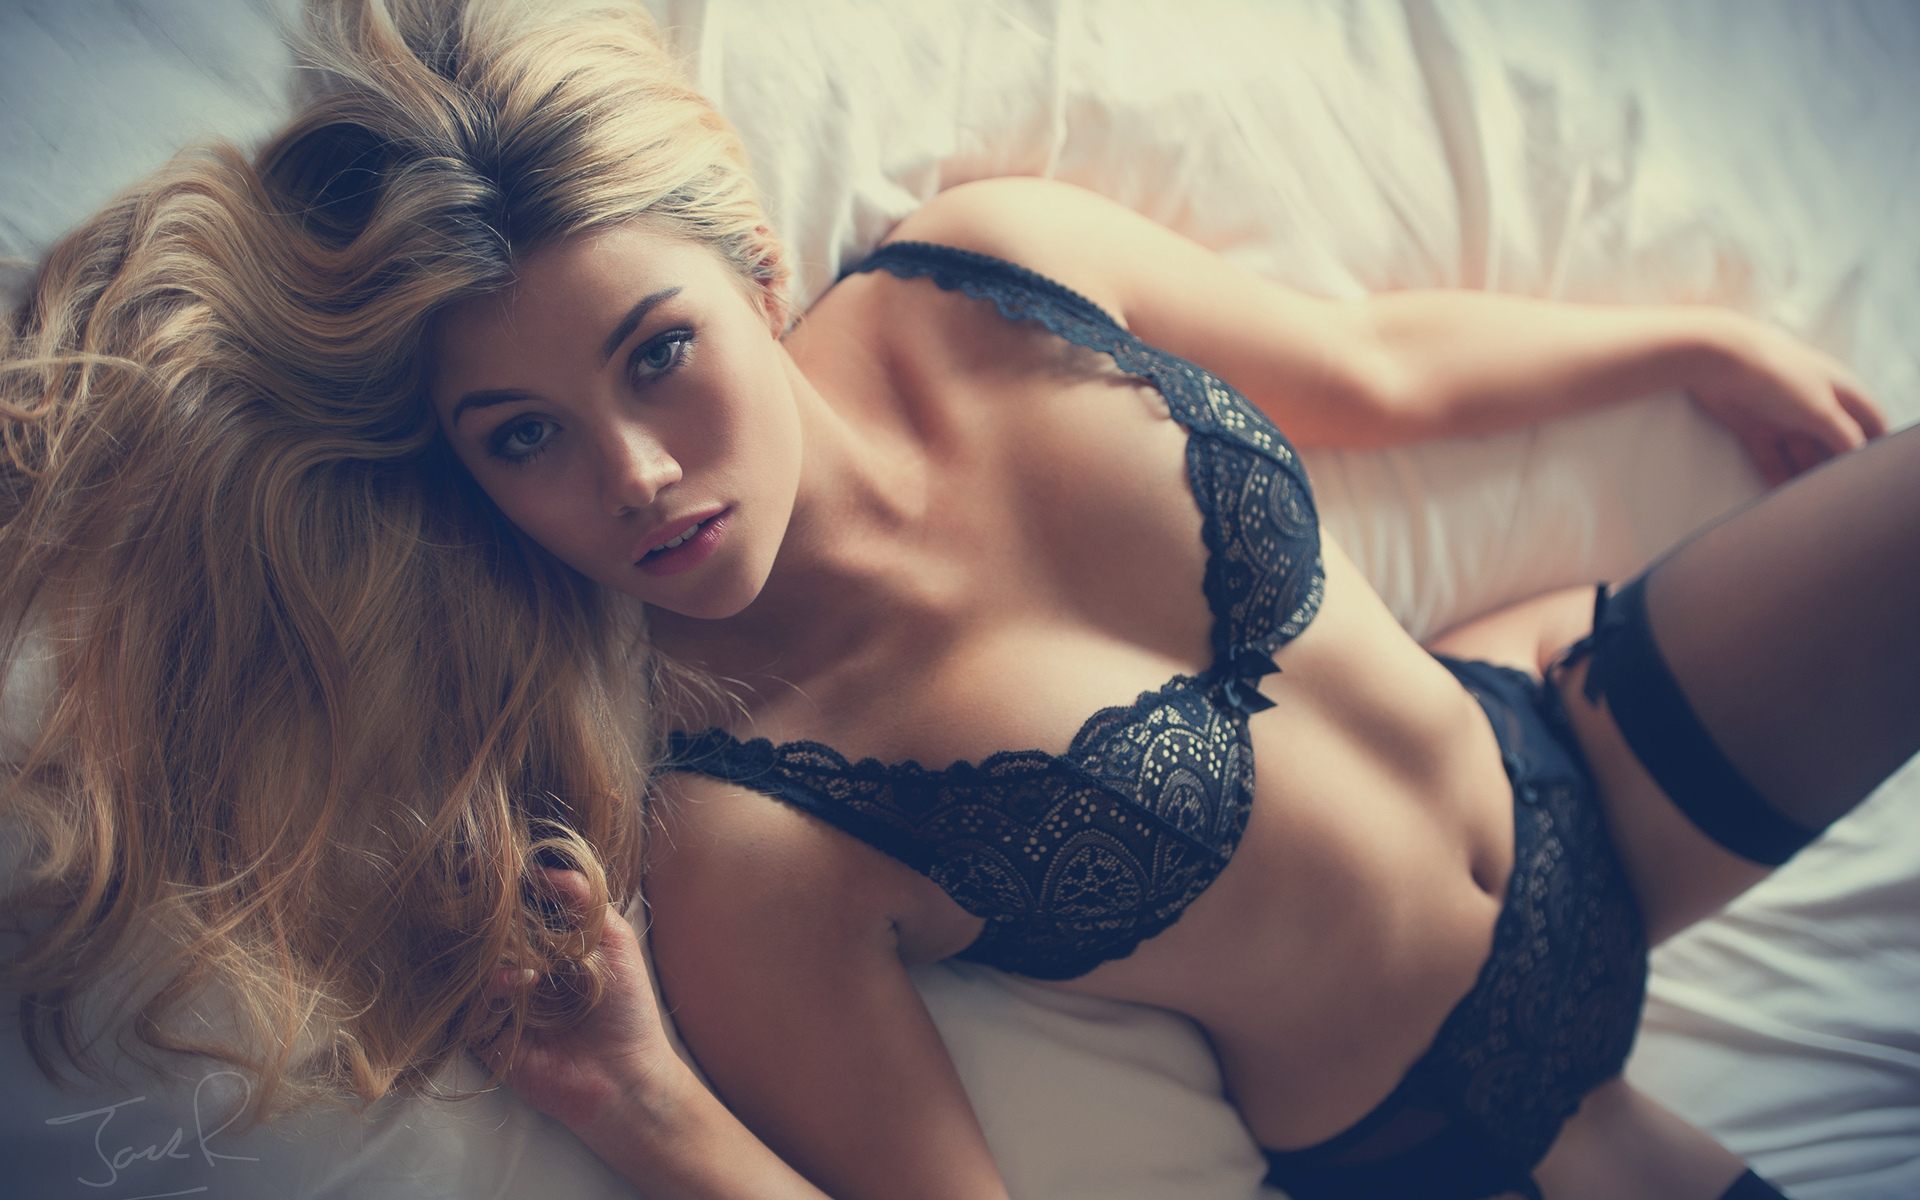 taylor-young-blonde-in-lingerie-sexy-hot